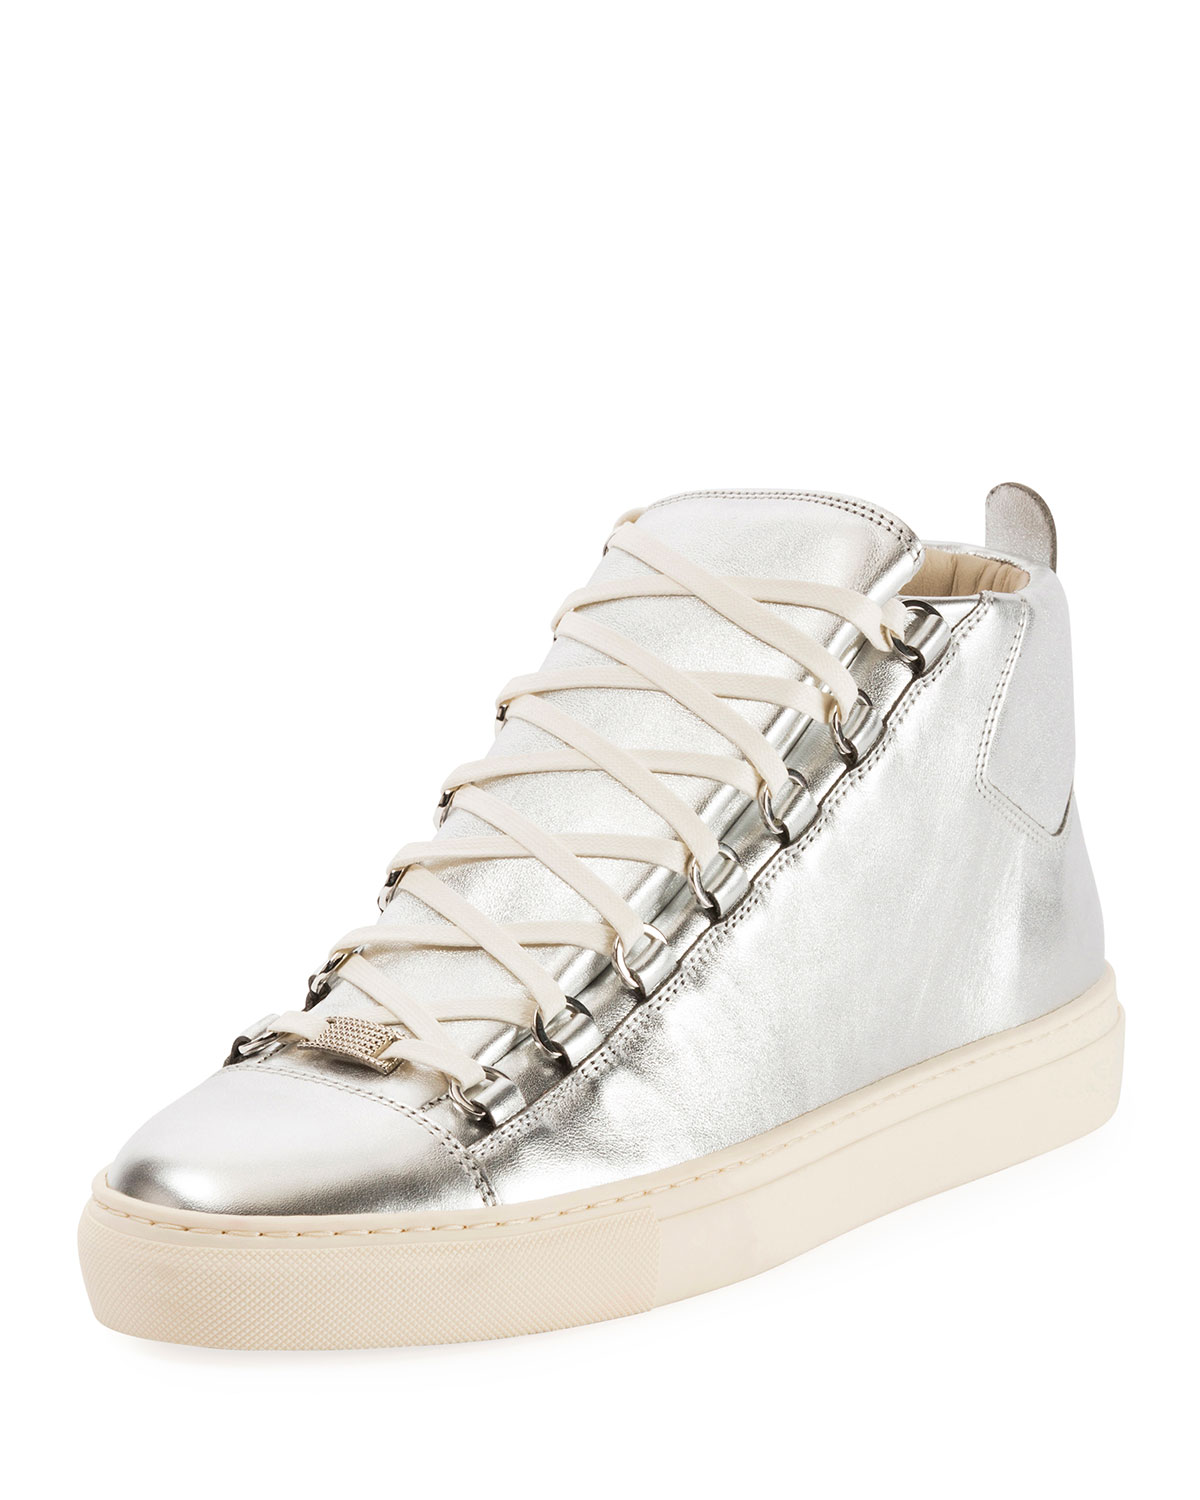 Balenciaga Men s Arena Metallic Leather High-Top Sneaker  ed6a199cda3b3